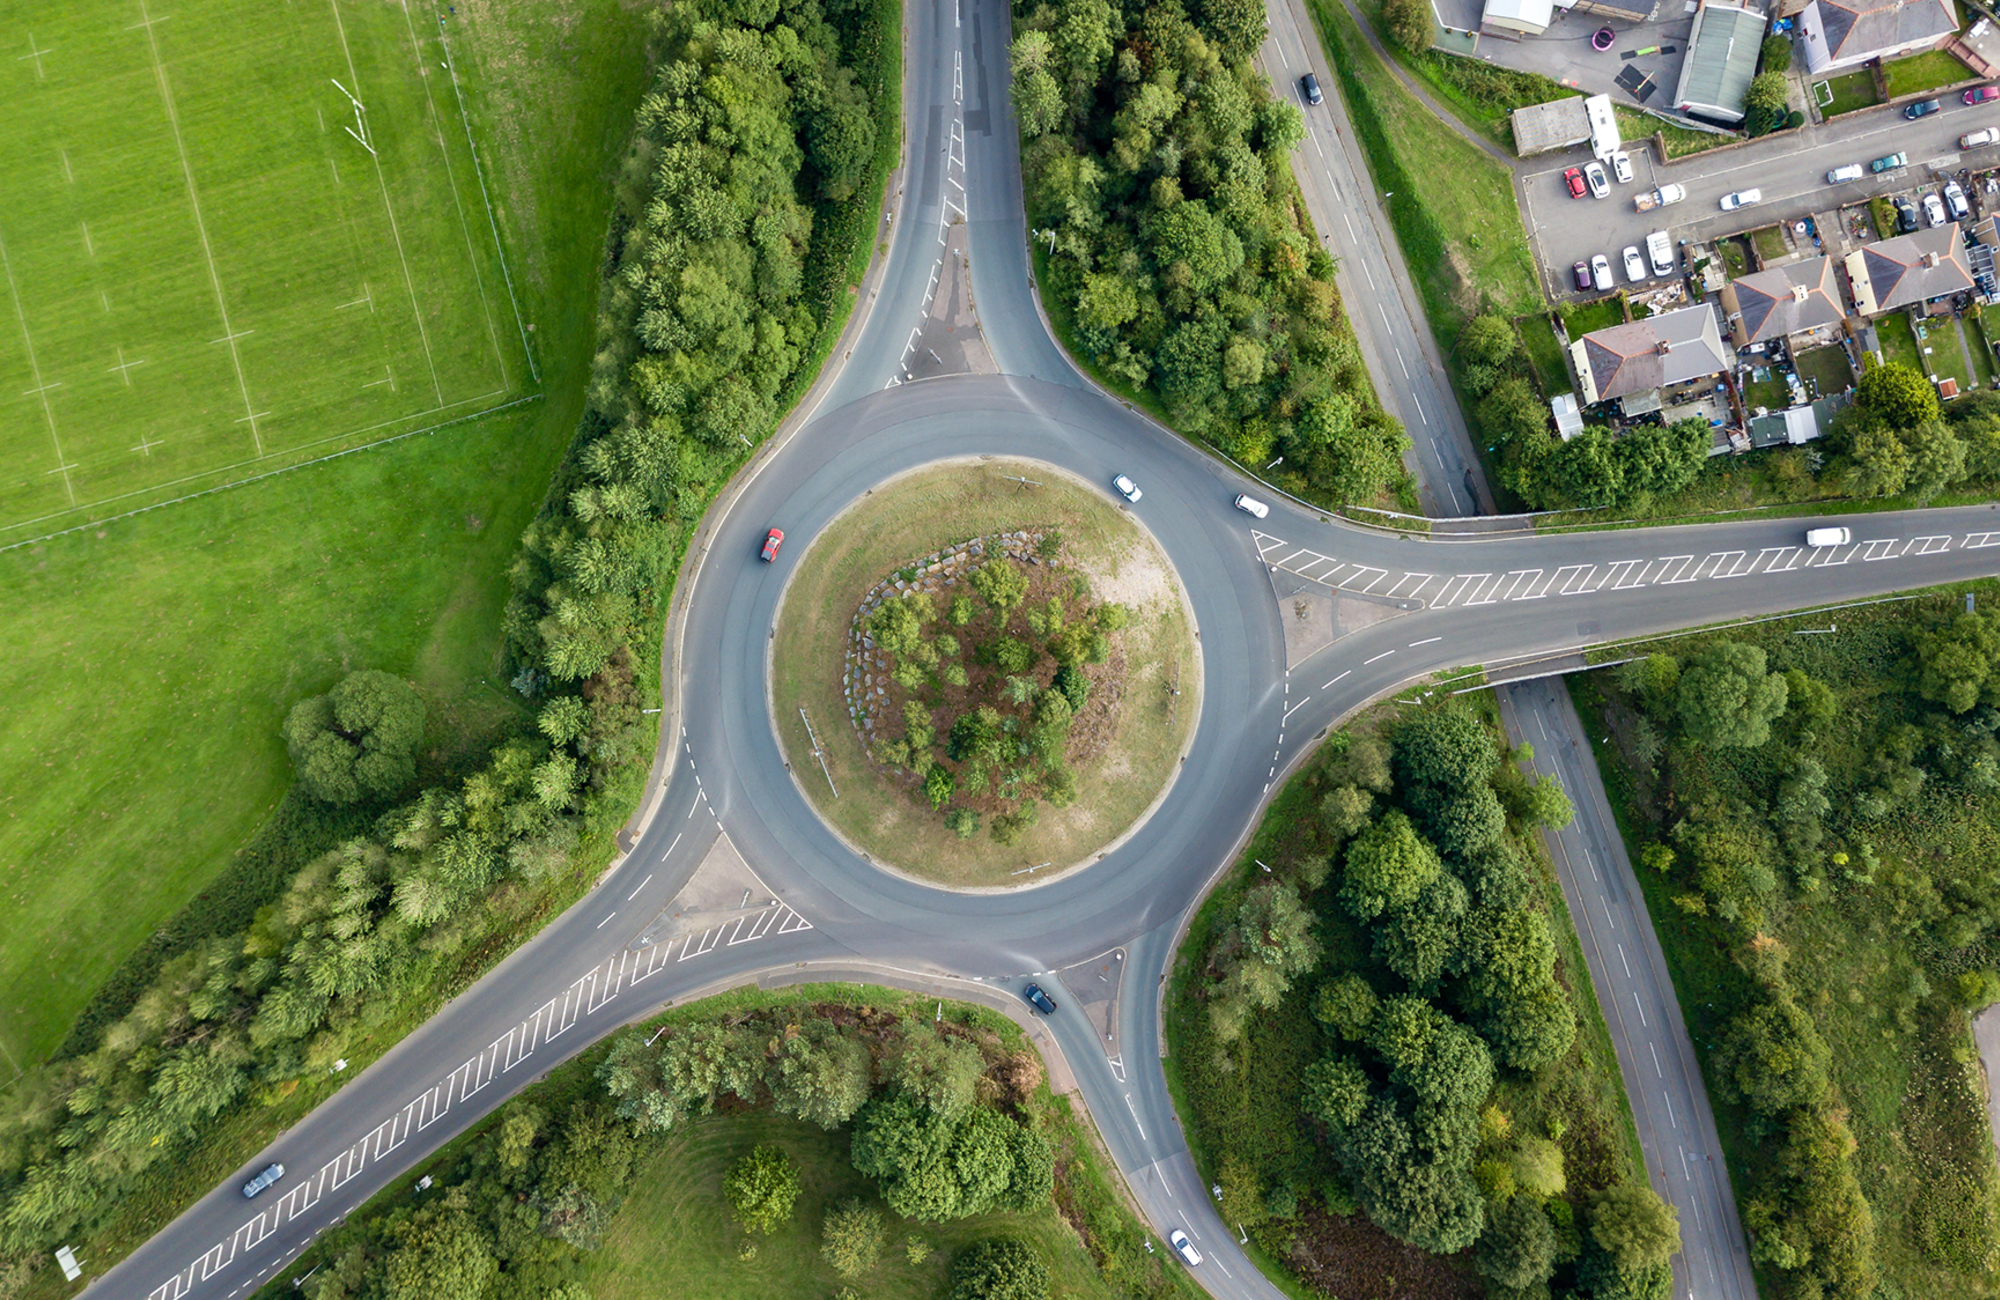 Swanstaff opens its 6th office in Milton Keynes, the town home to the most roundabouts in the UK.